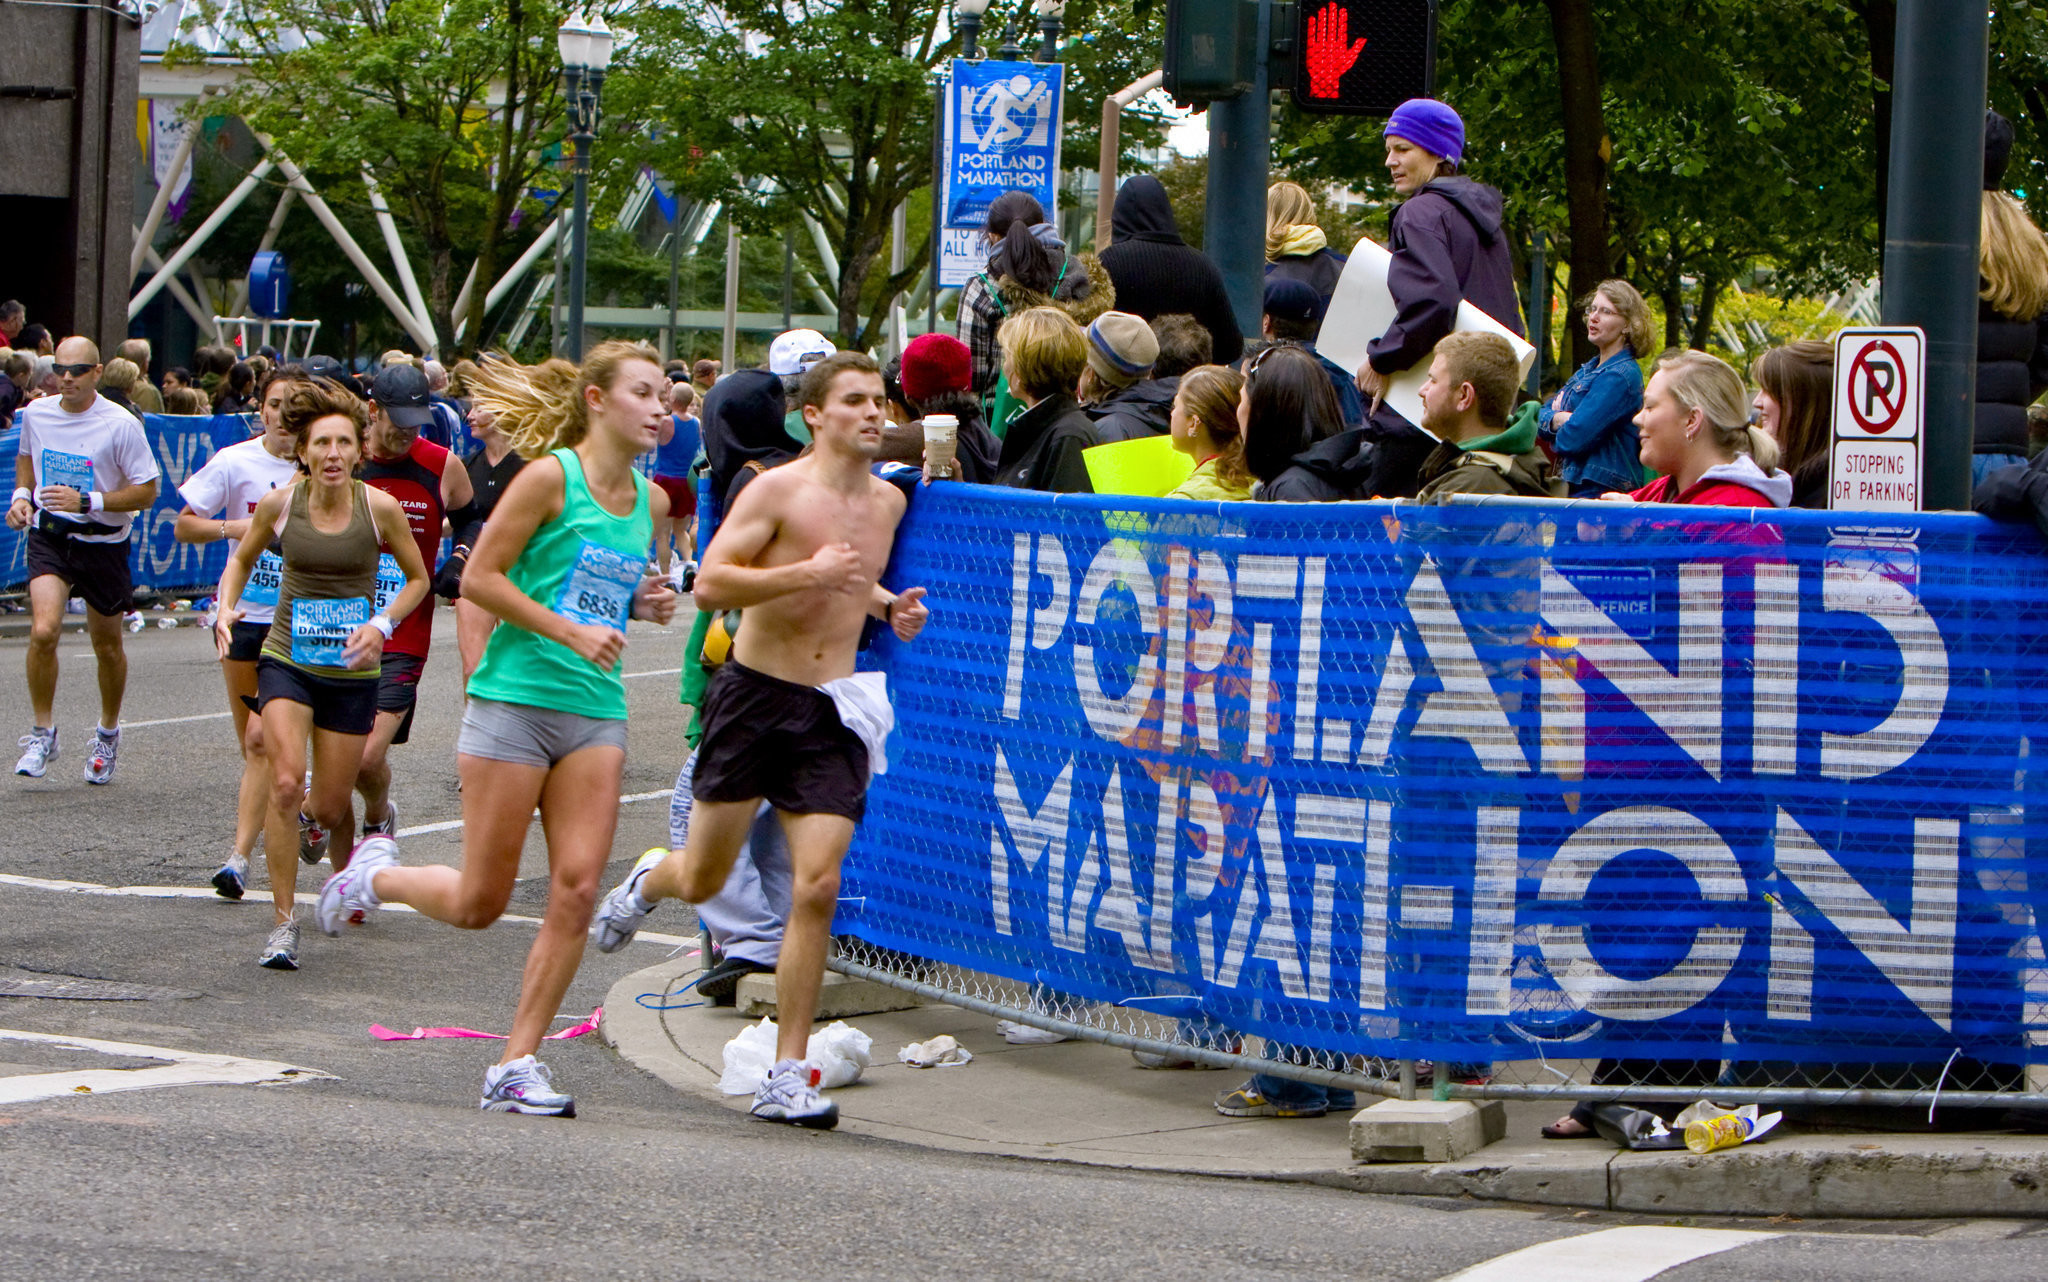 The 2018 Portland Marathon is back in play, details should be announced in early June